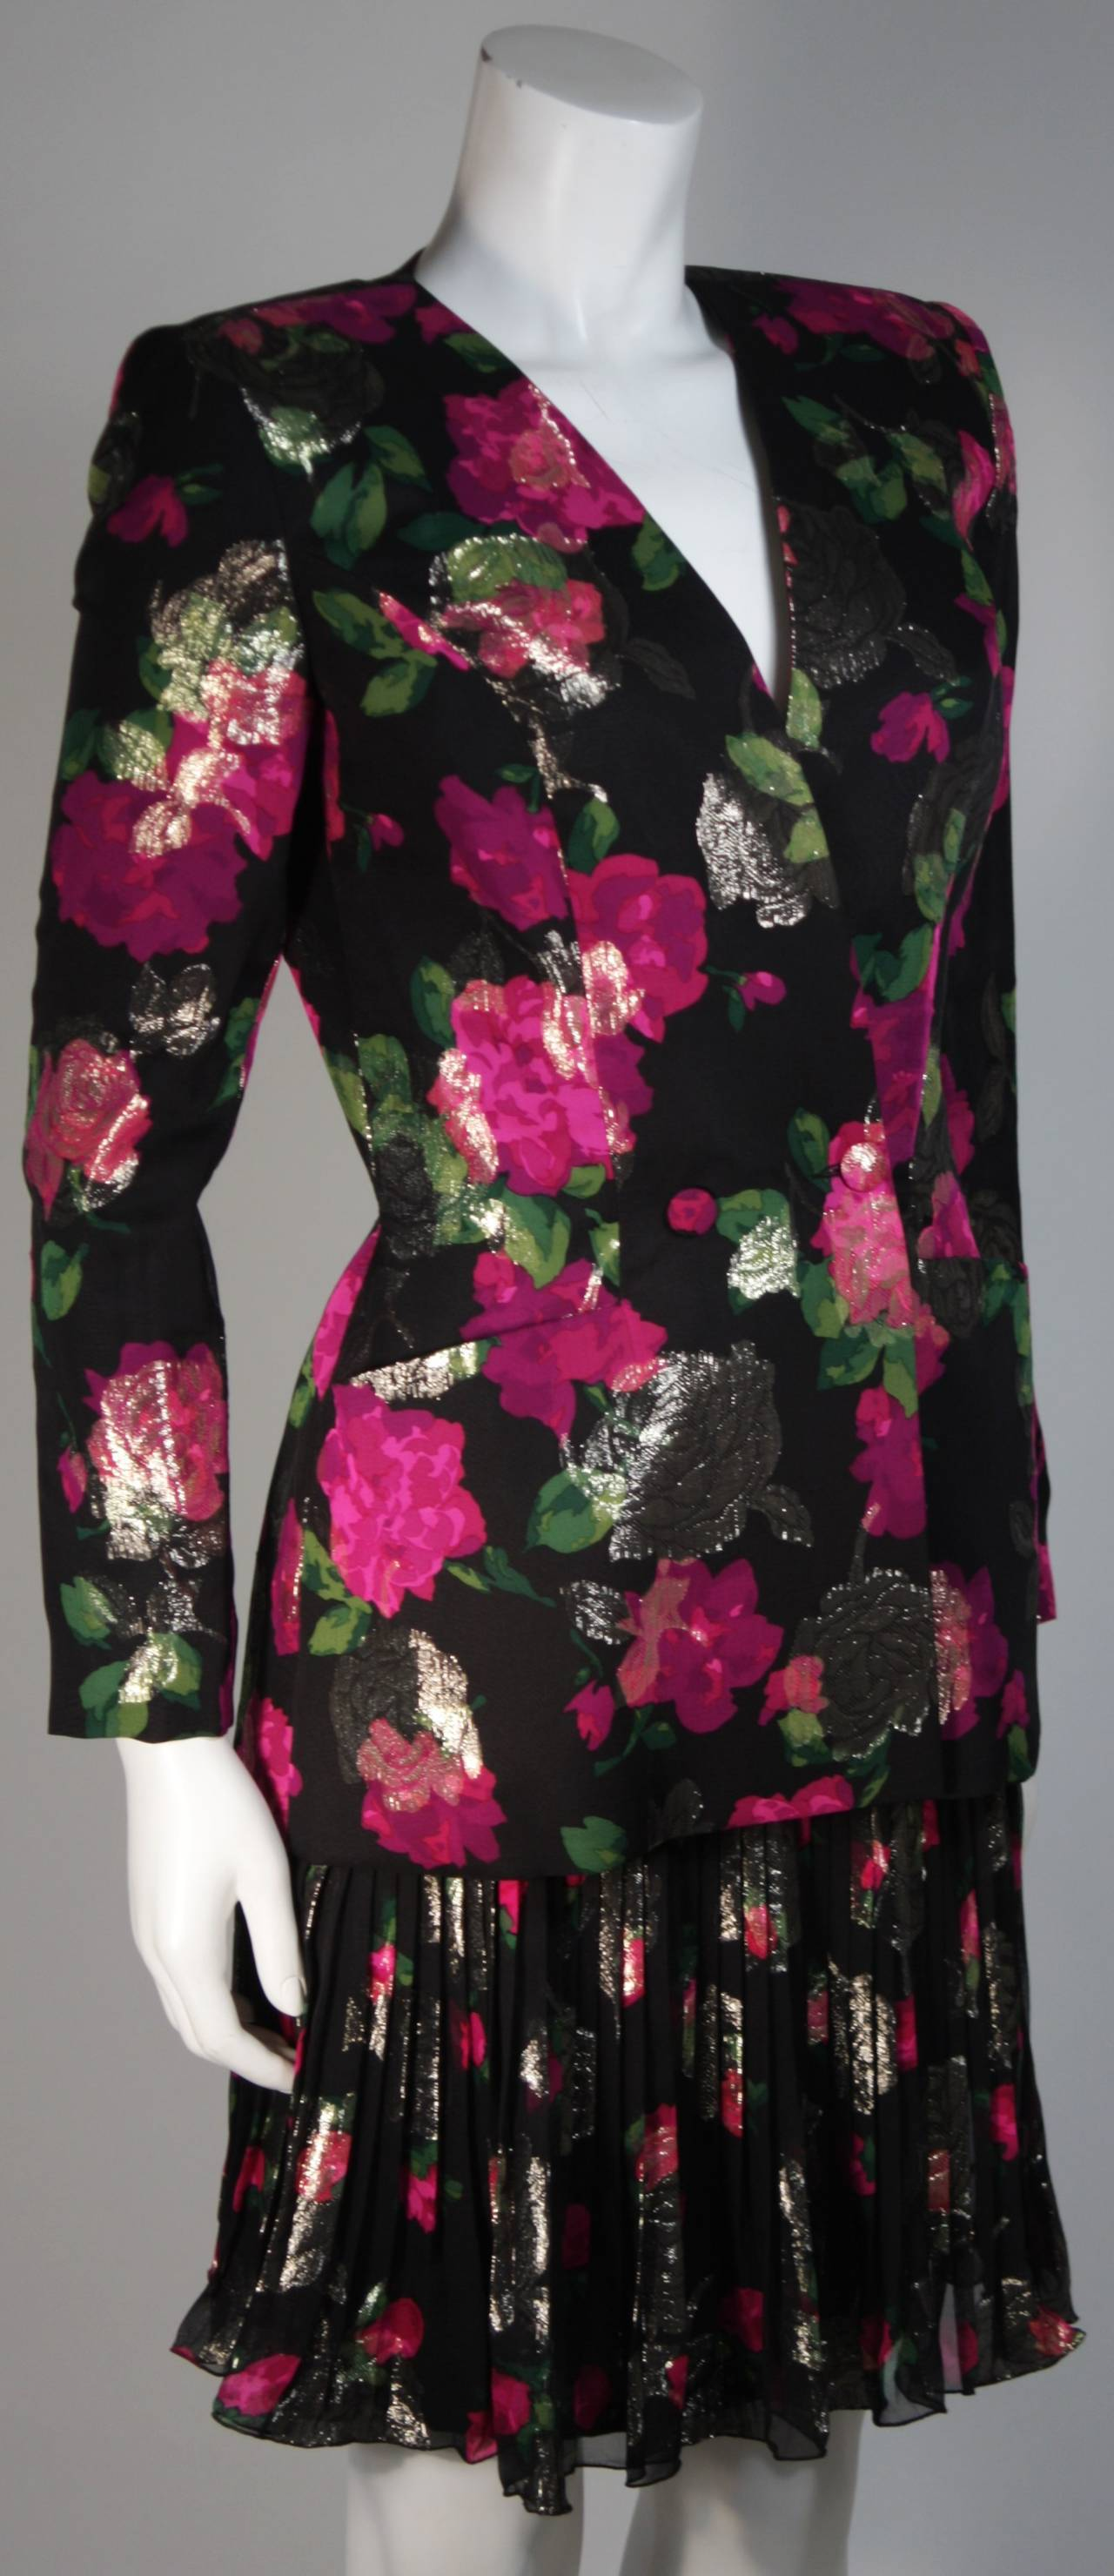 Women's Vicky Tiel Black SilkSuit with Floral Motif and Pleated Chiffon Skirt Size Small For Sale